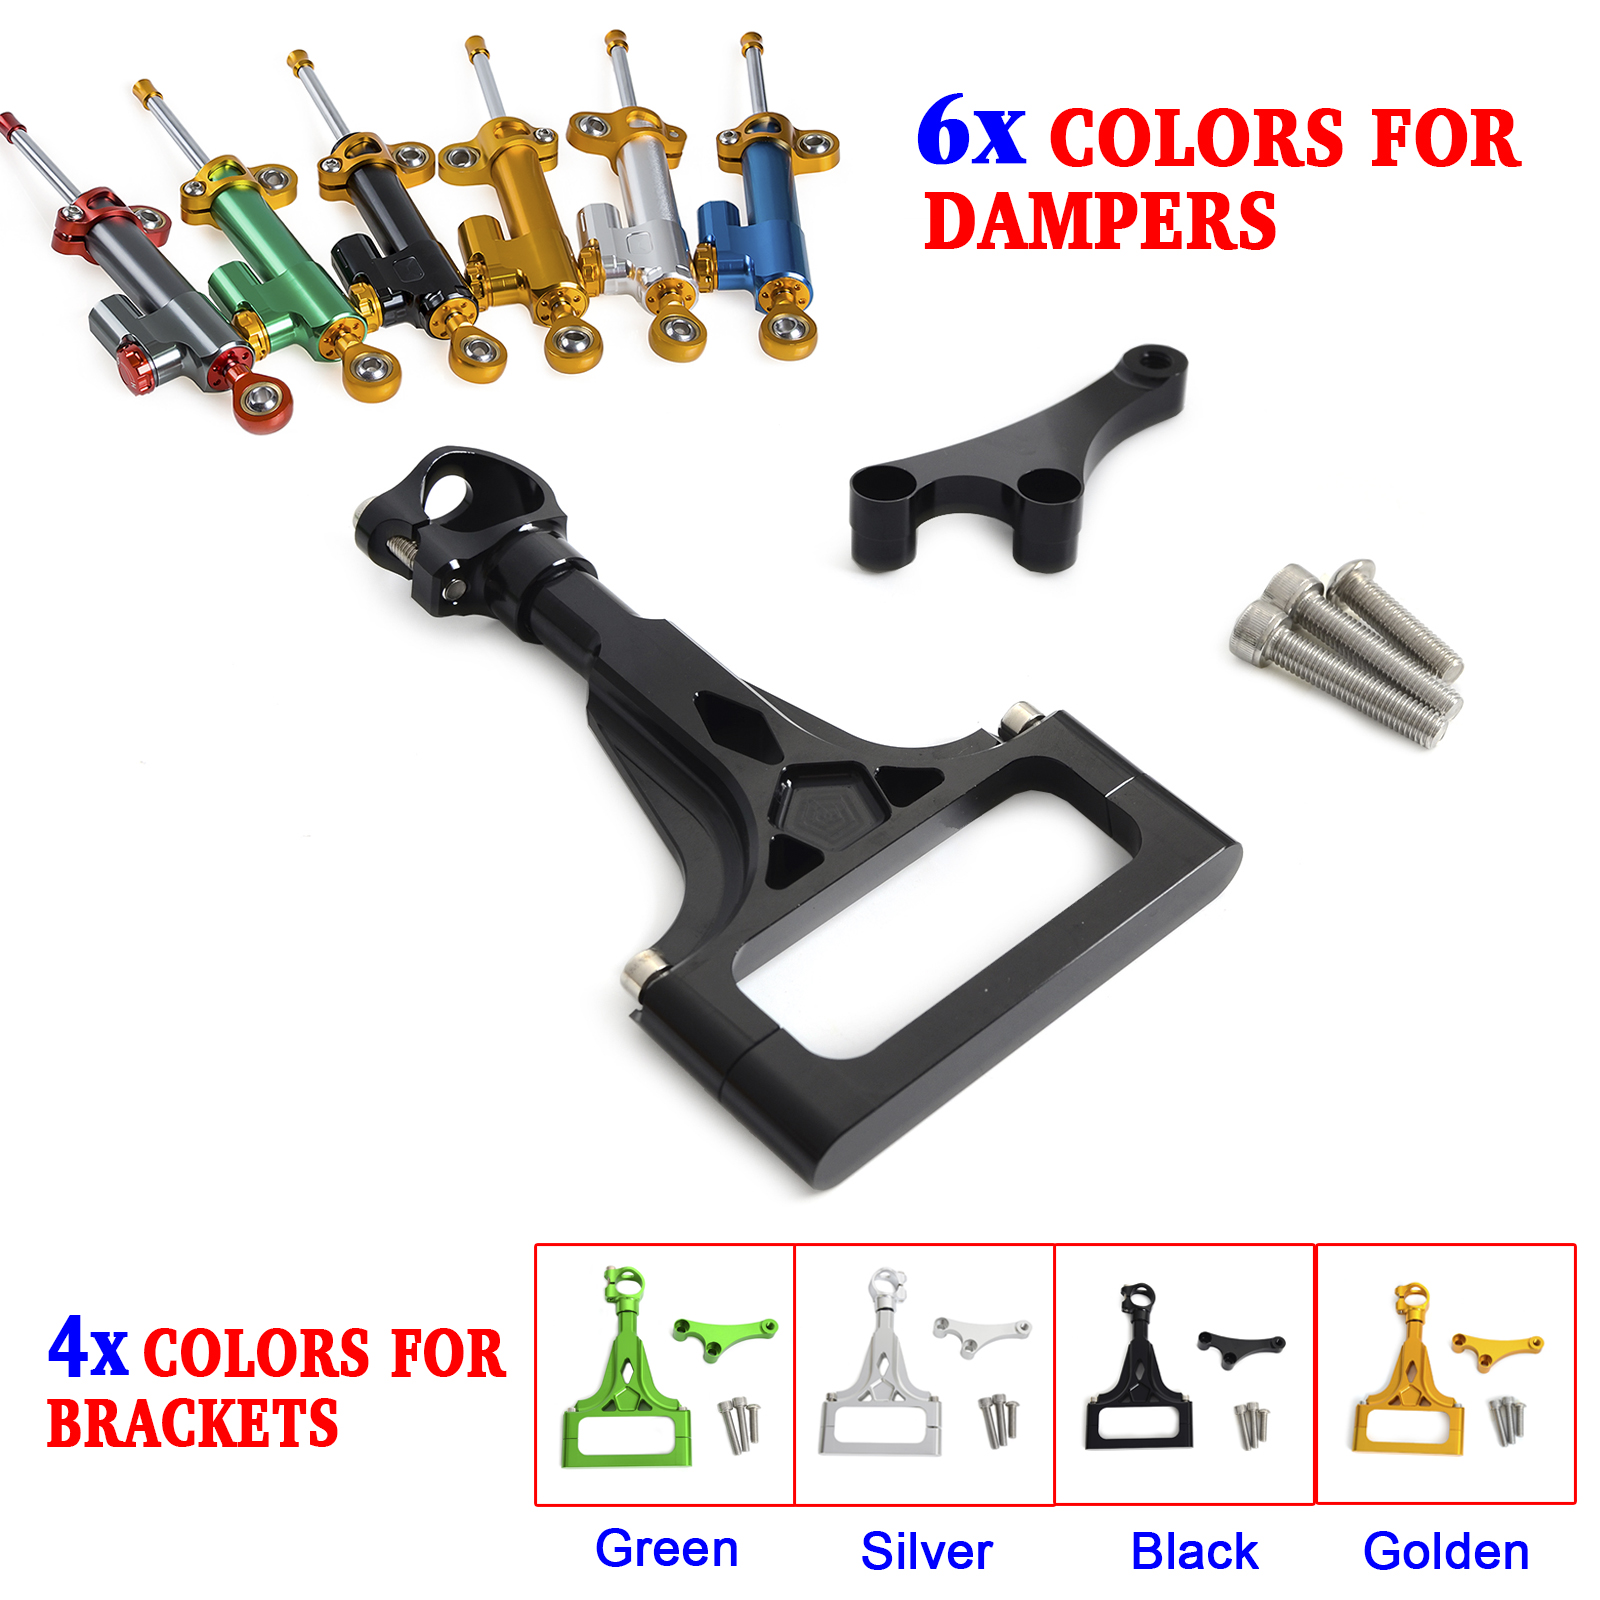 Motorcycle CNC Steering Damper Stabilizer & Bracket Mounting Kit for Kawasaki Z750 2003-2012 Z750R 2011 2012 Z1000 2003-2009 motorcycle aluminum cnc direction steering damper steering mounting kit stabilizer adjustable for bmw s1000rr hp4 2009 2016